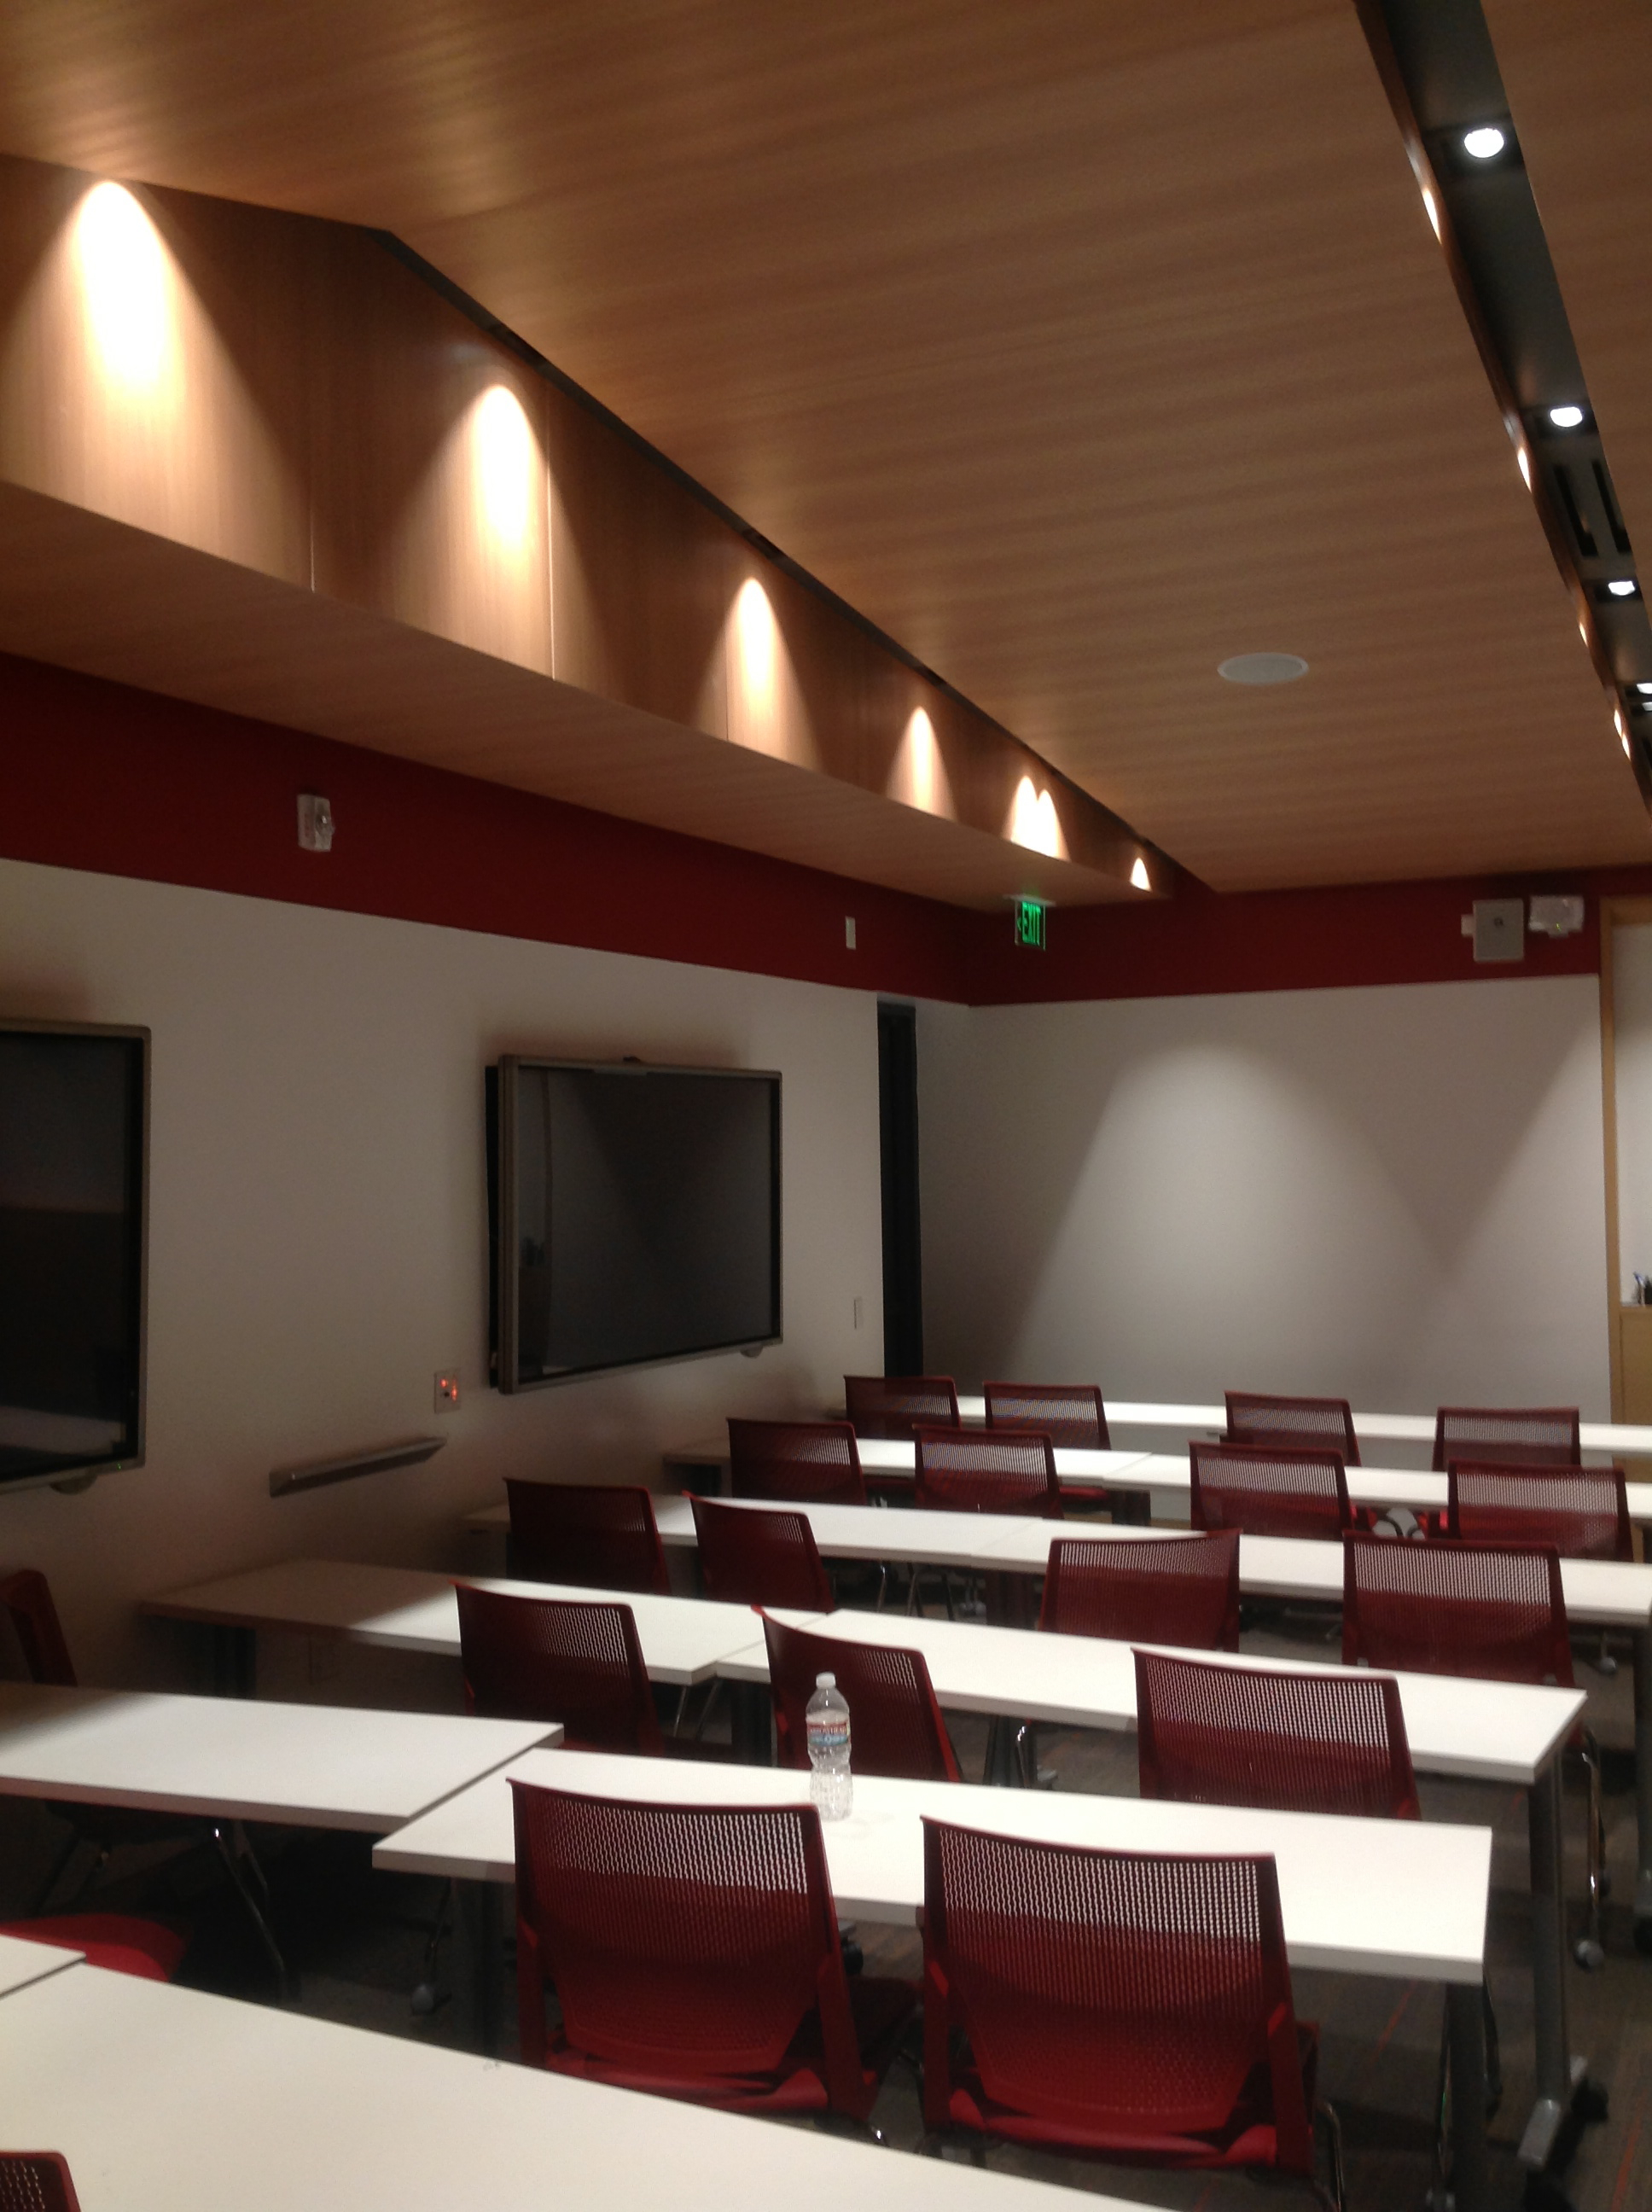 USC - GFS Lecture Hall